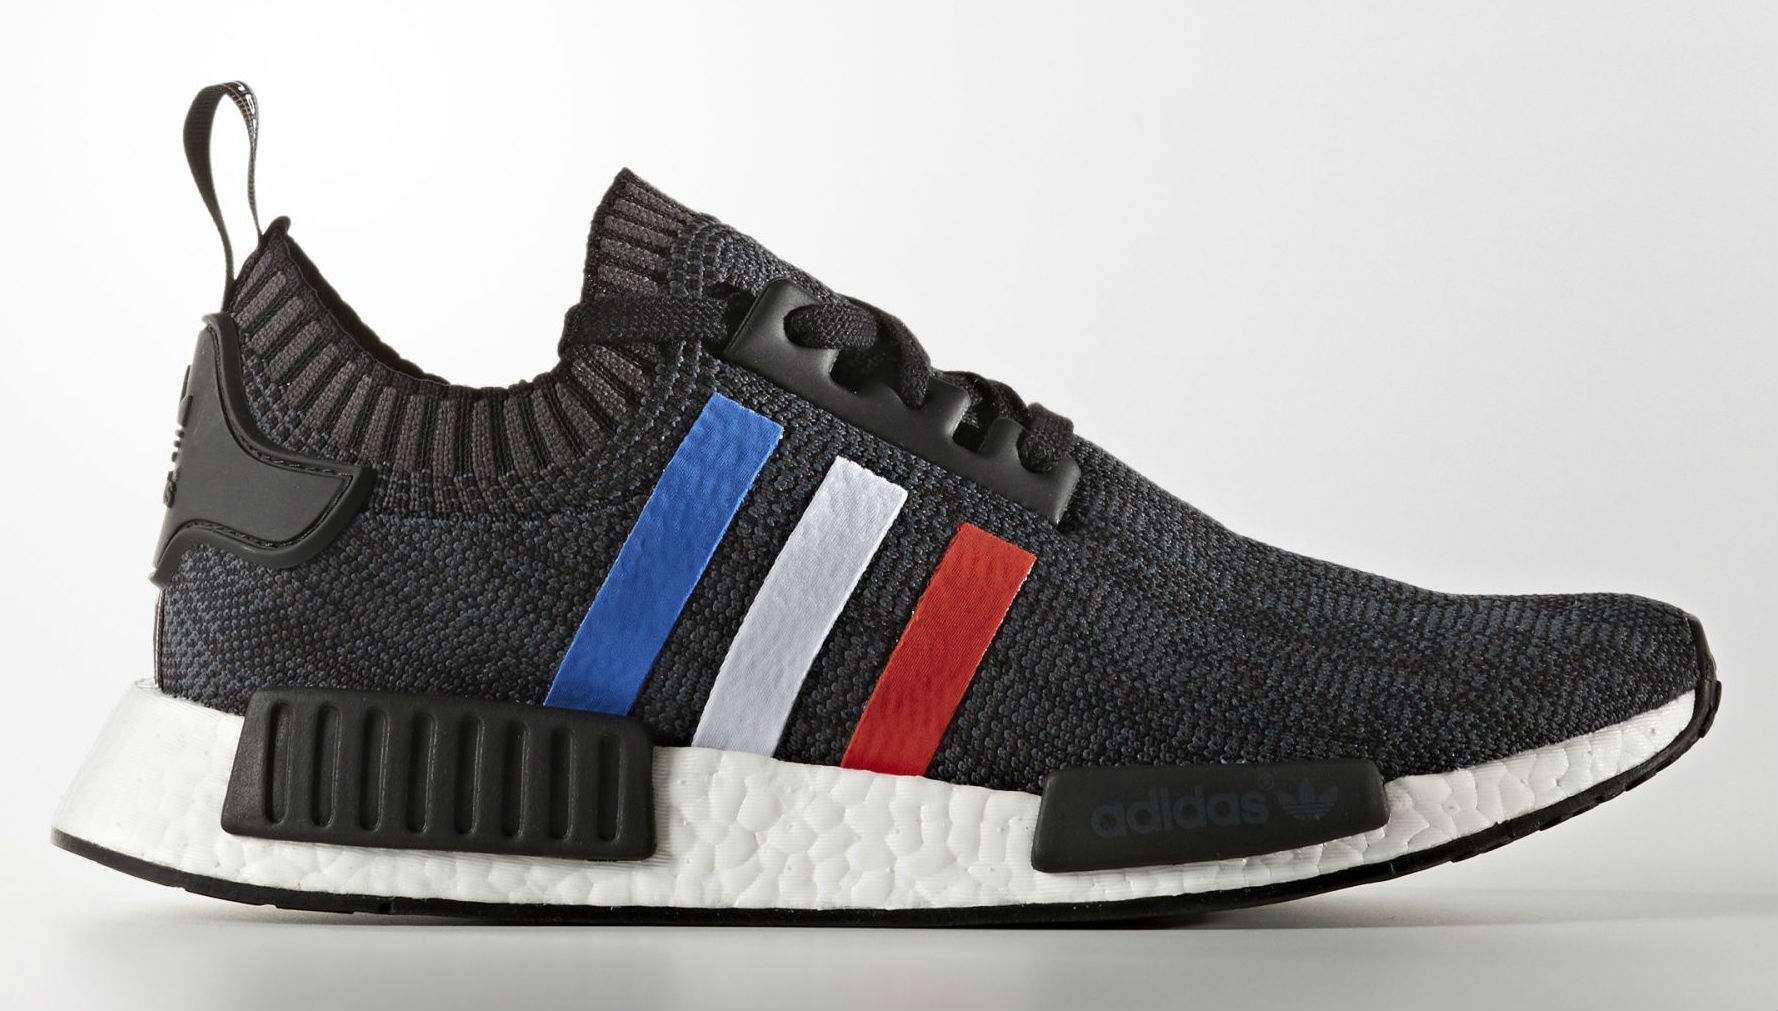 adidas nmd primeknit red white blue stripes sole